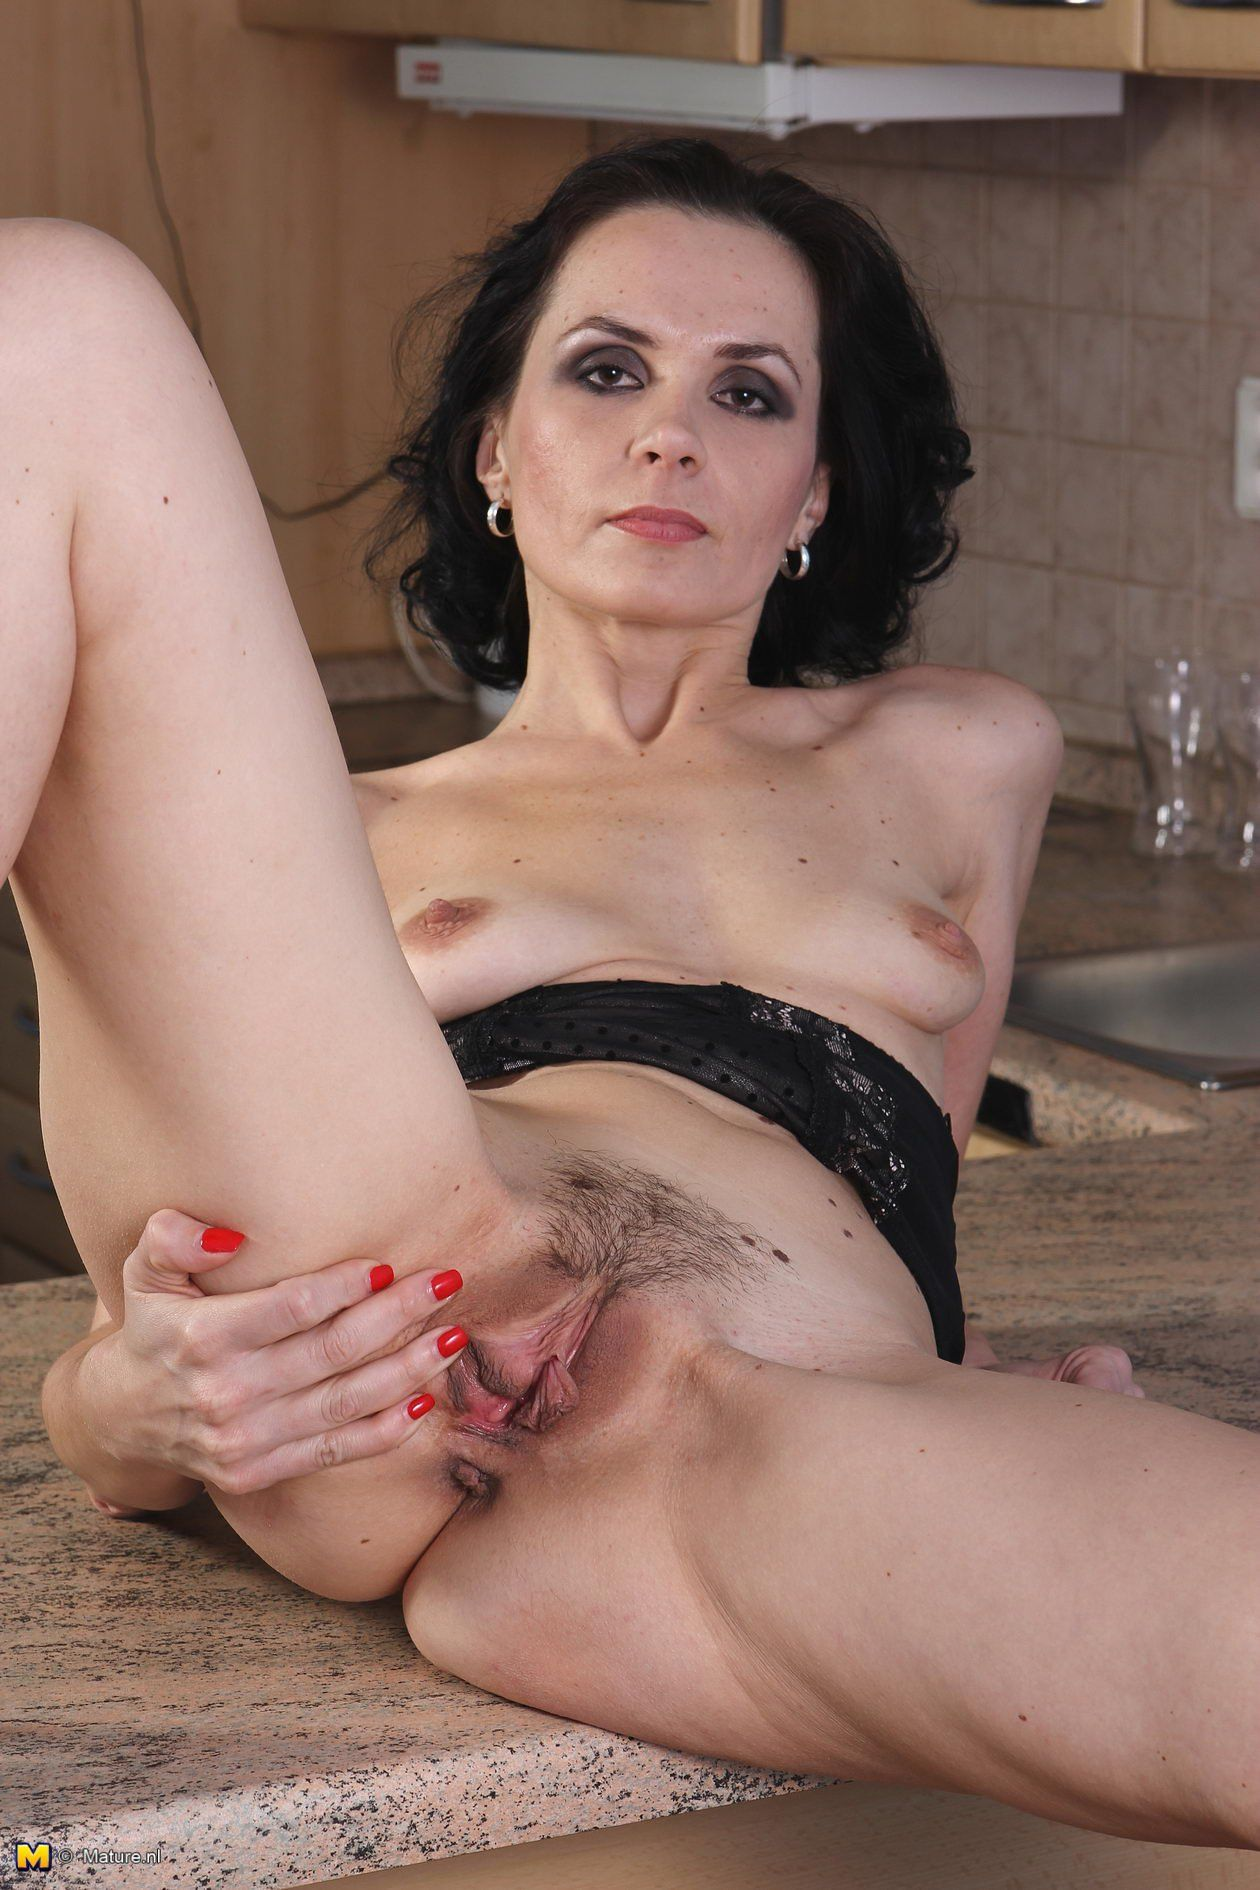 phrase gangbang shaved lick dick load cumm on face are not right. assured